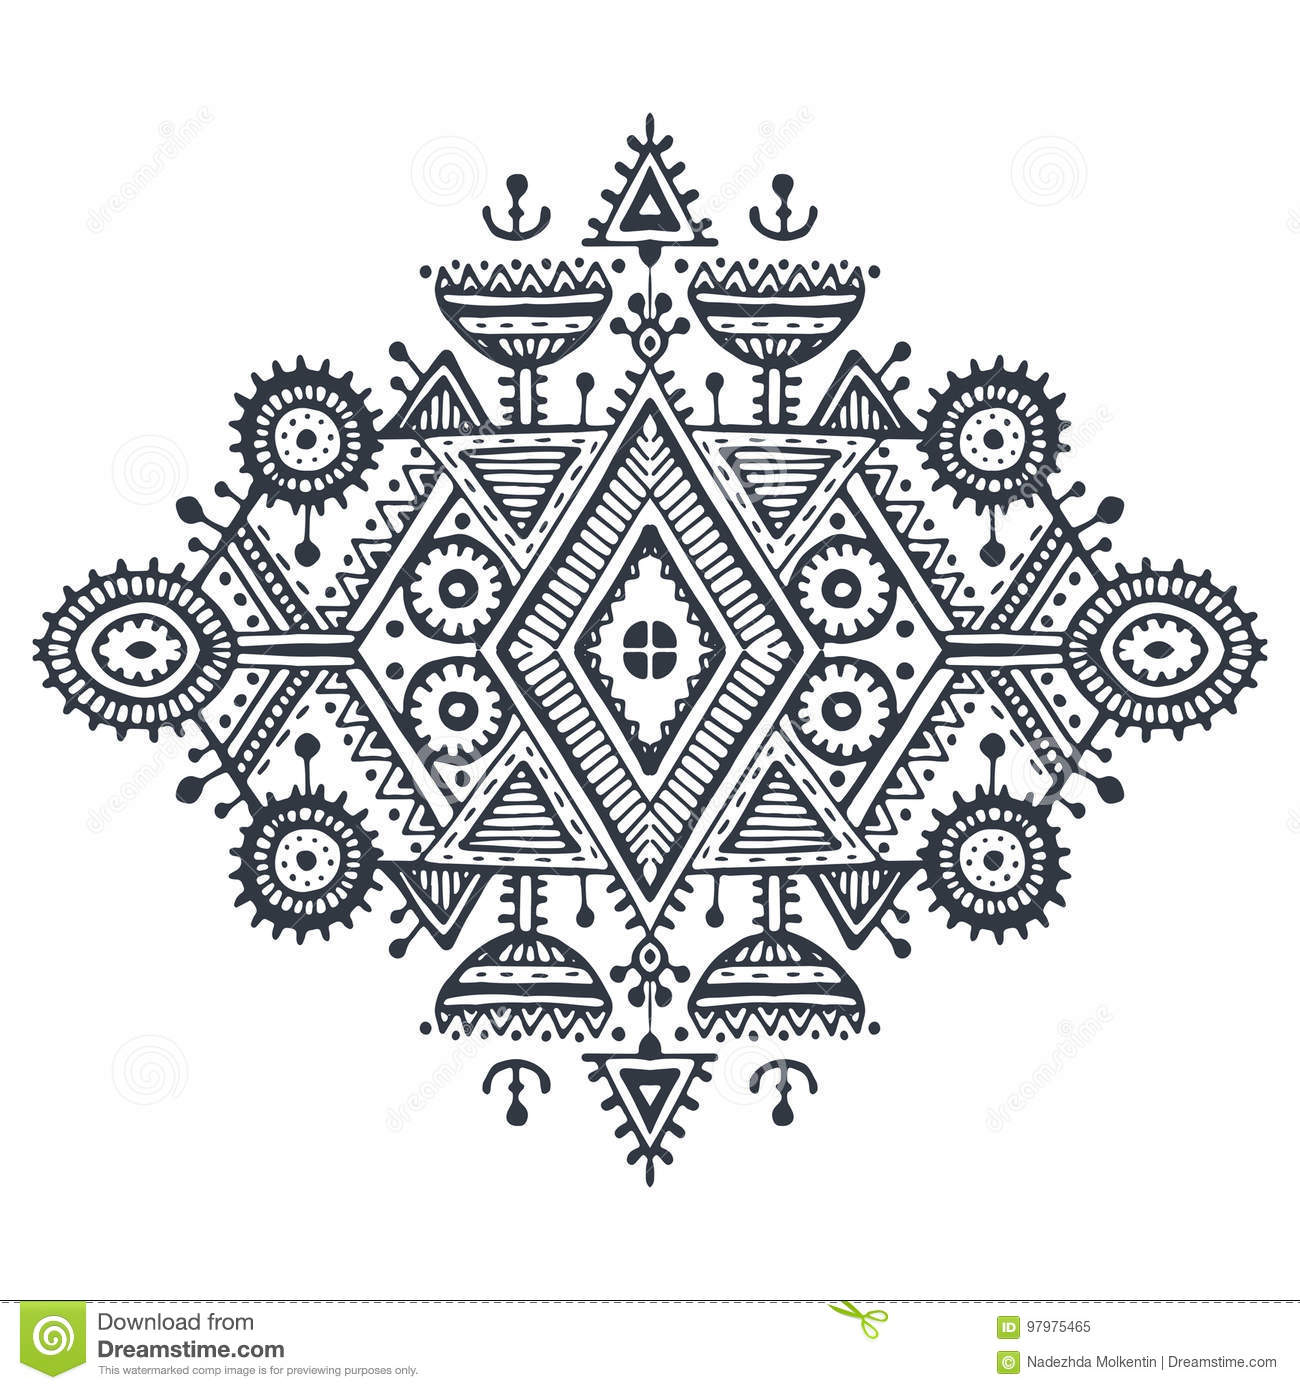 0b68fb5a Royalty-Free Vector. Tribal art boho hand drawn geometric pattern.